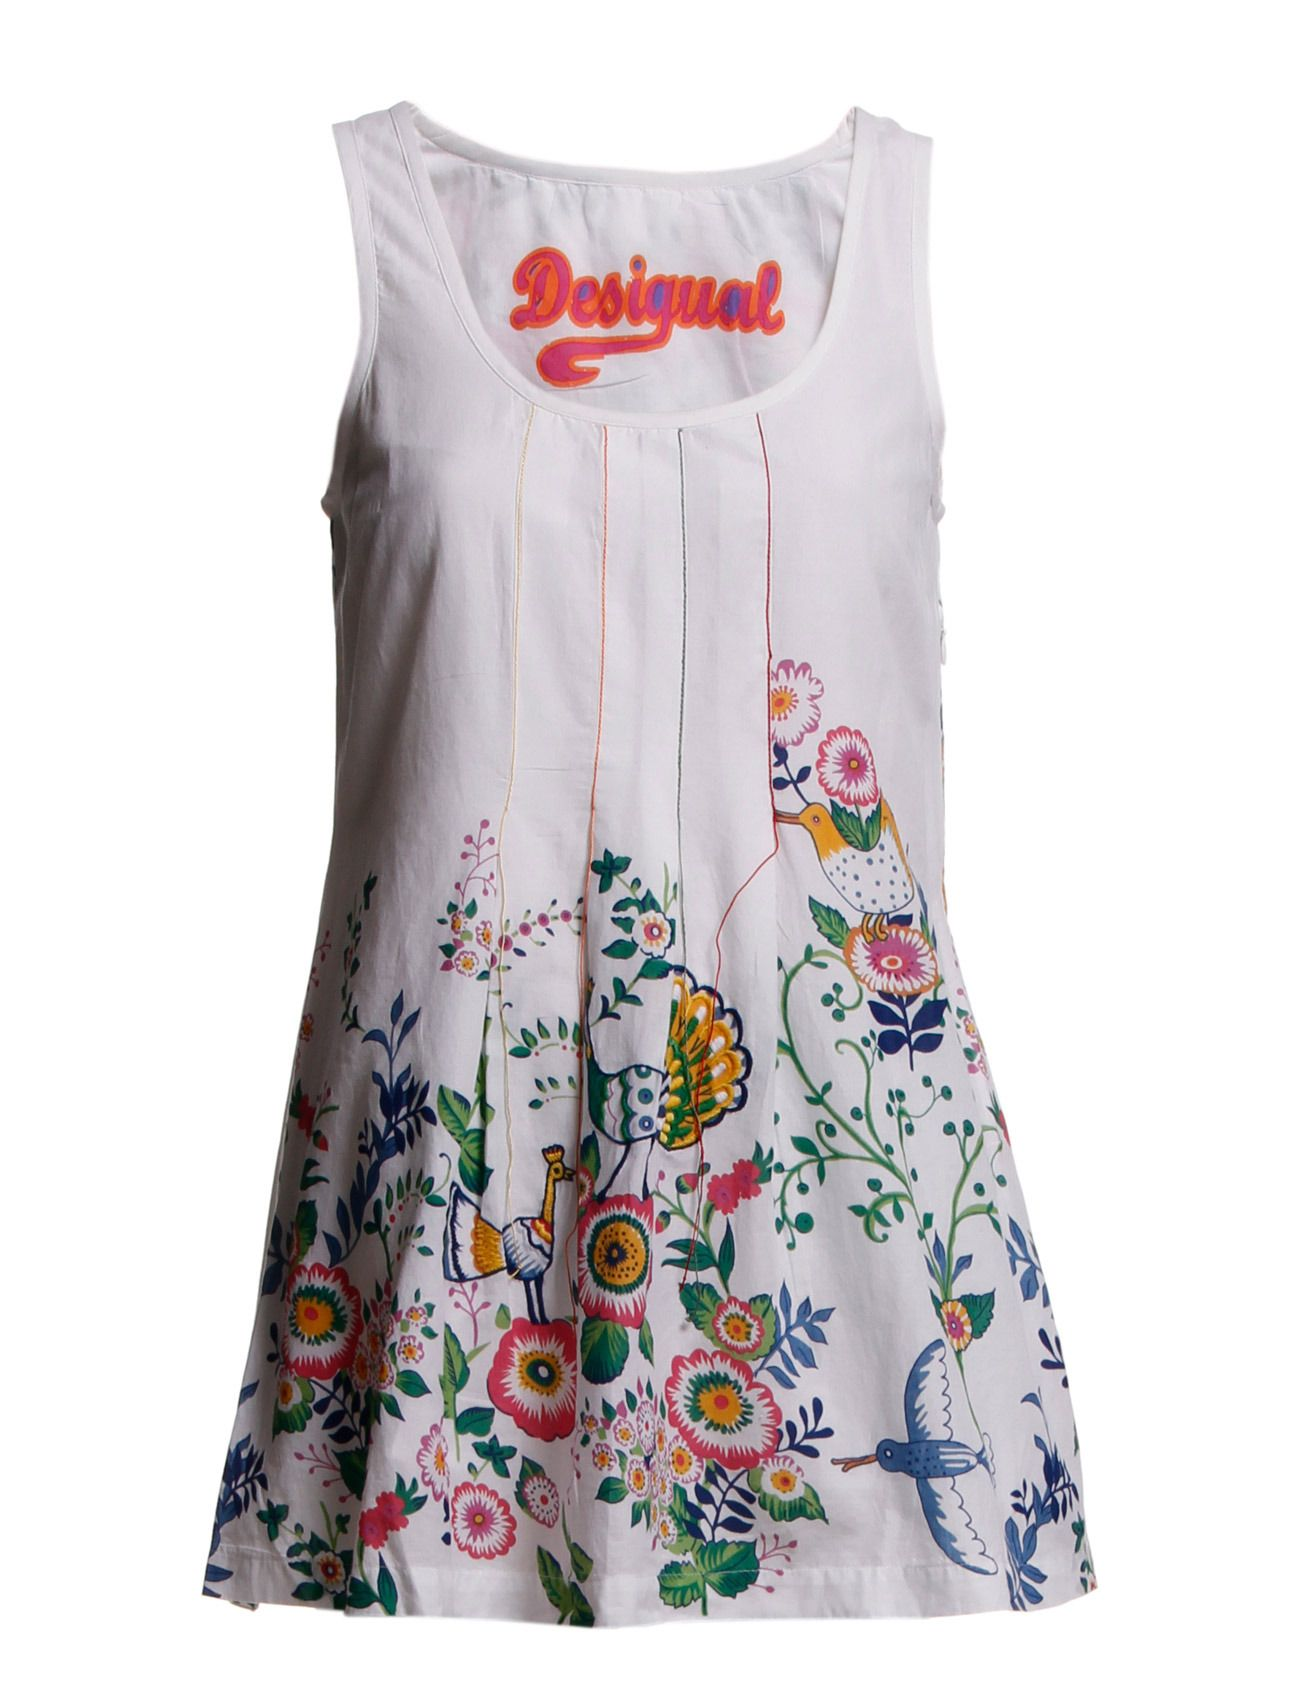 I tried on this Desigual's lovely shirt but unfortunately I can't afford it. A gift idea? :)